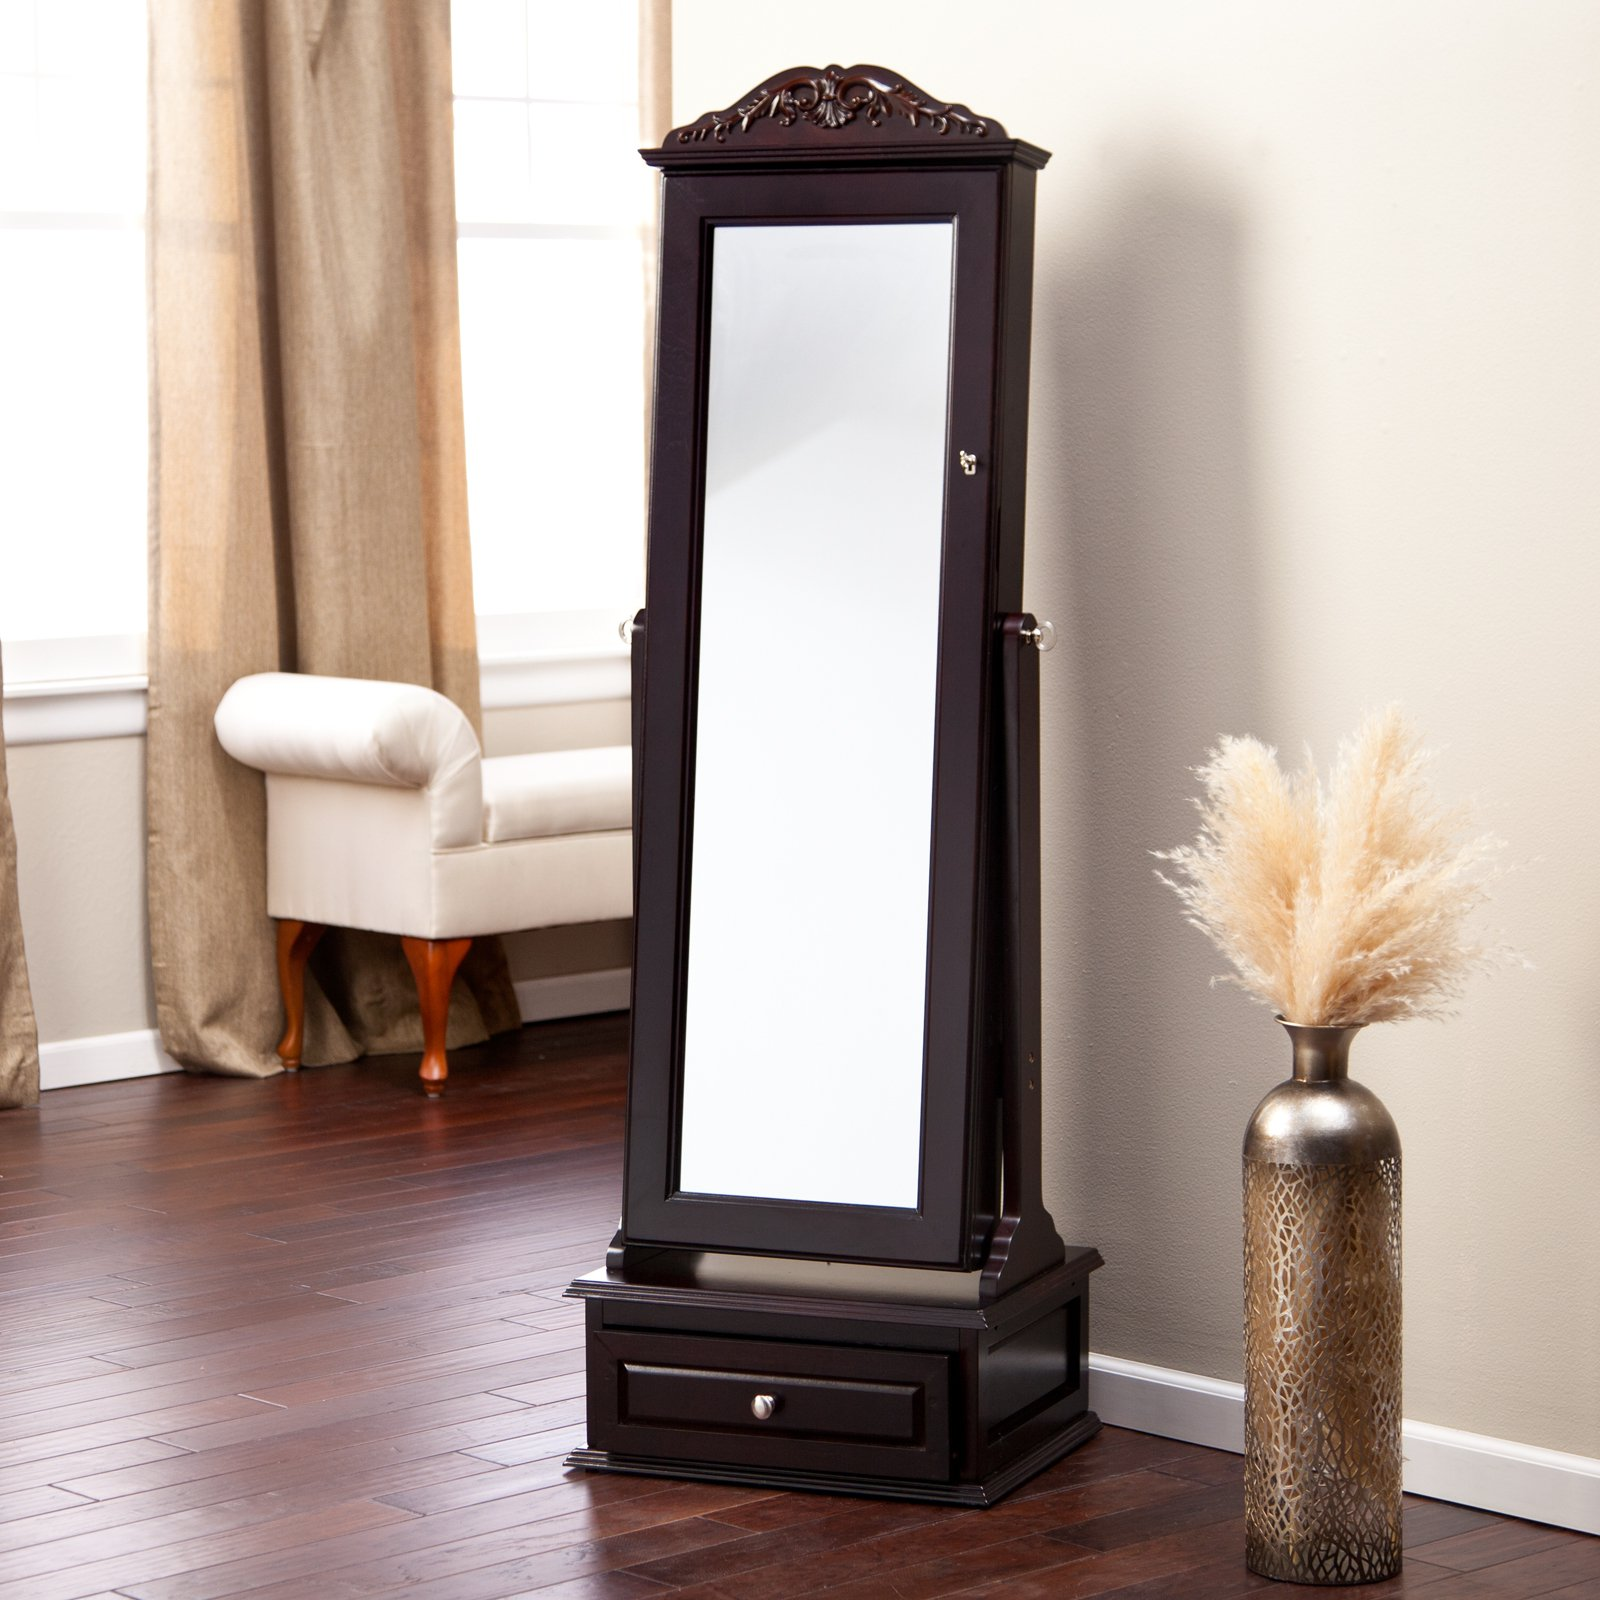 Cheval Mirror Jewelry Armoire Plans